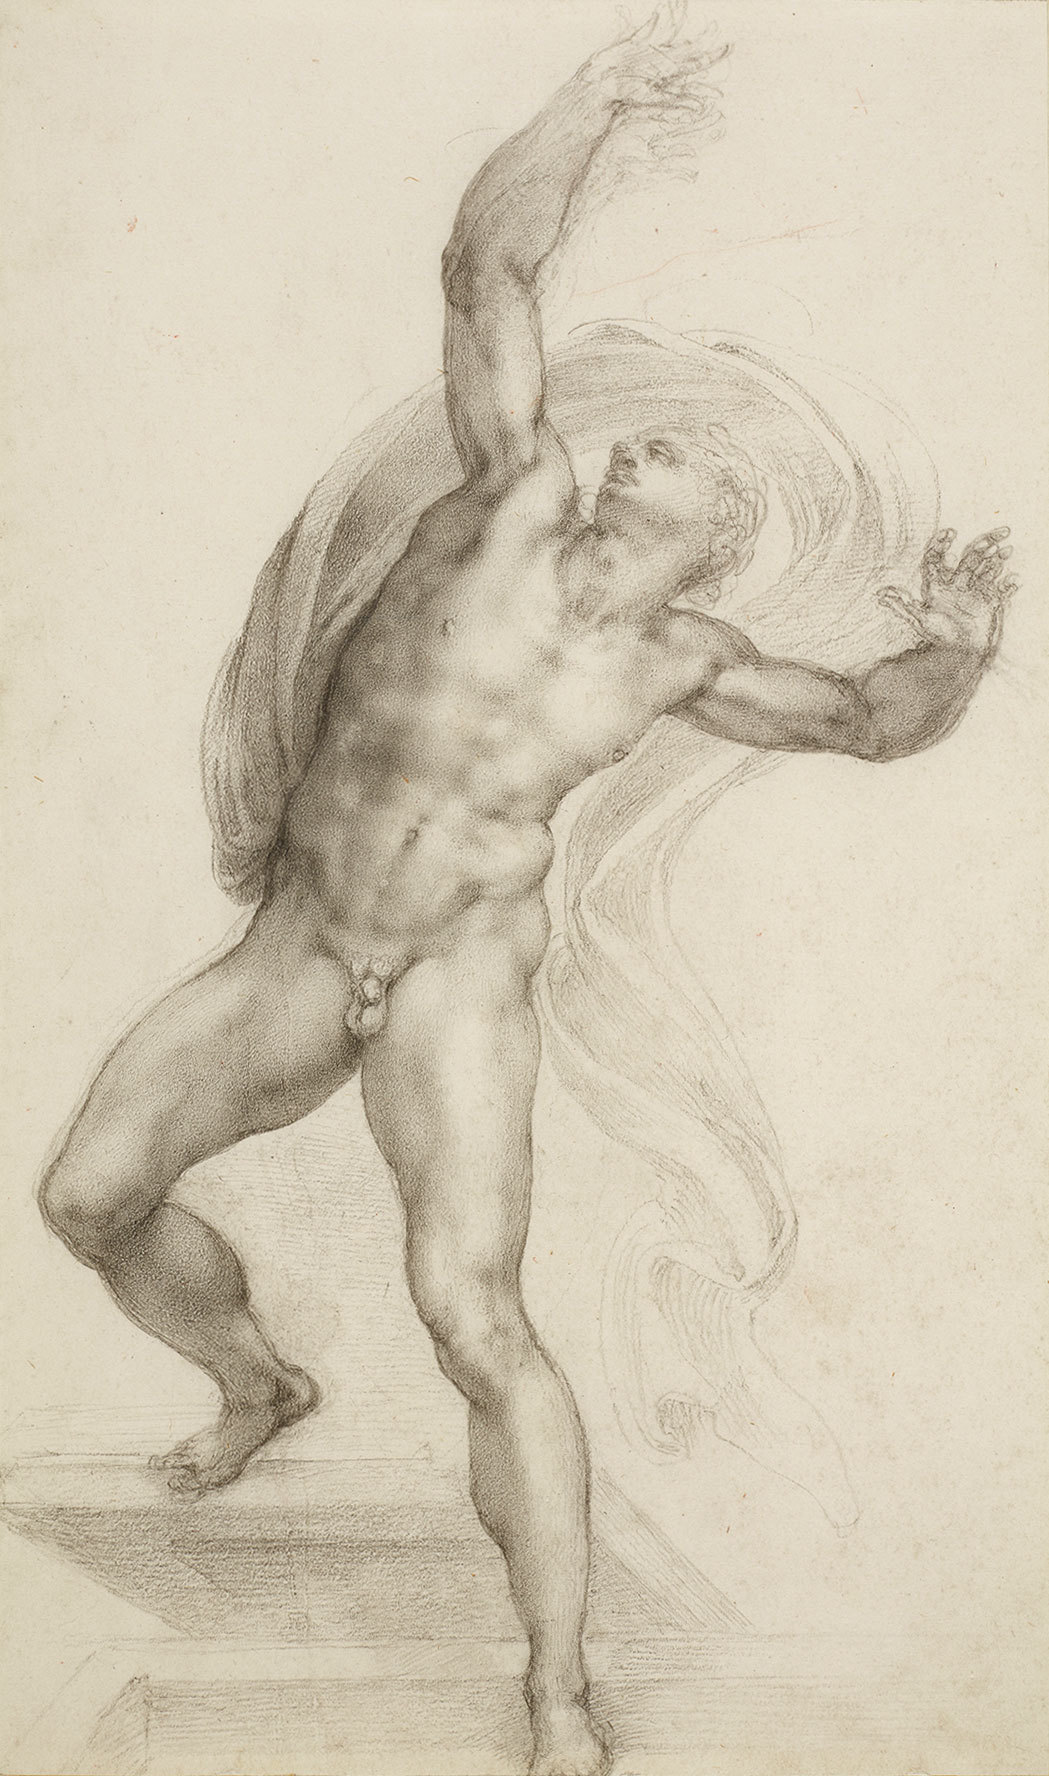 The Risen Christ by Michelangelo